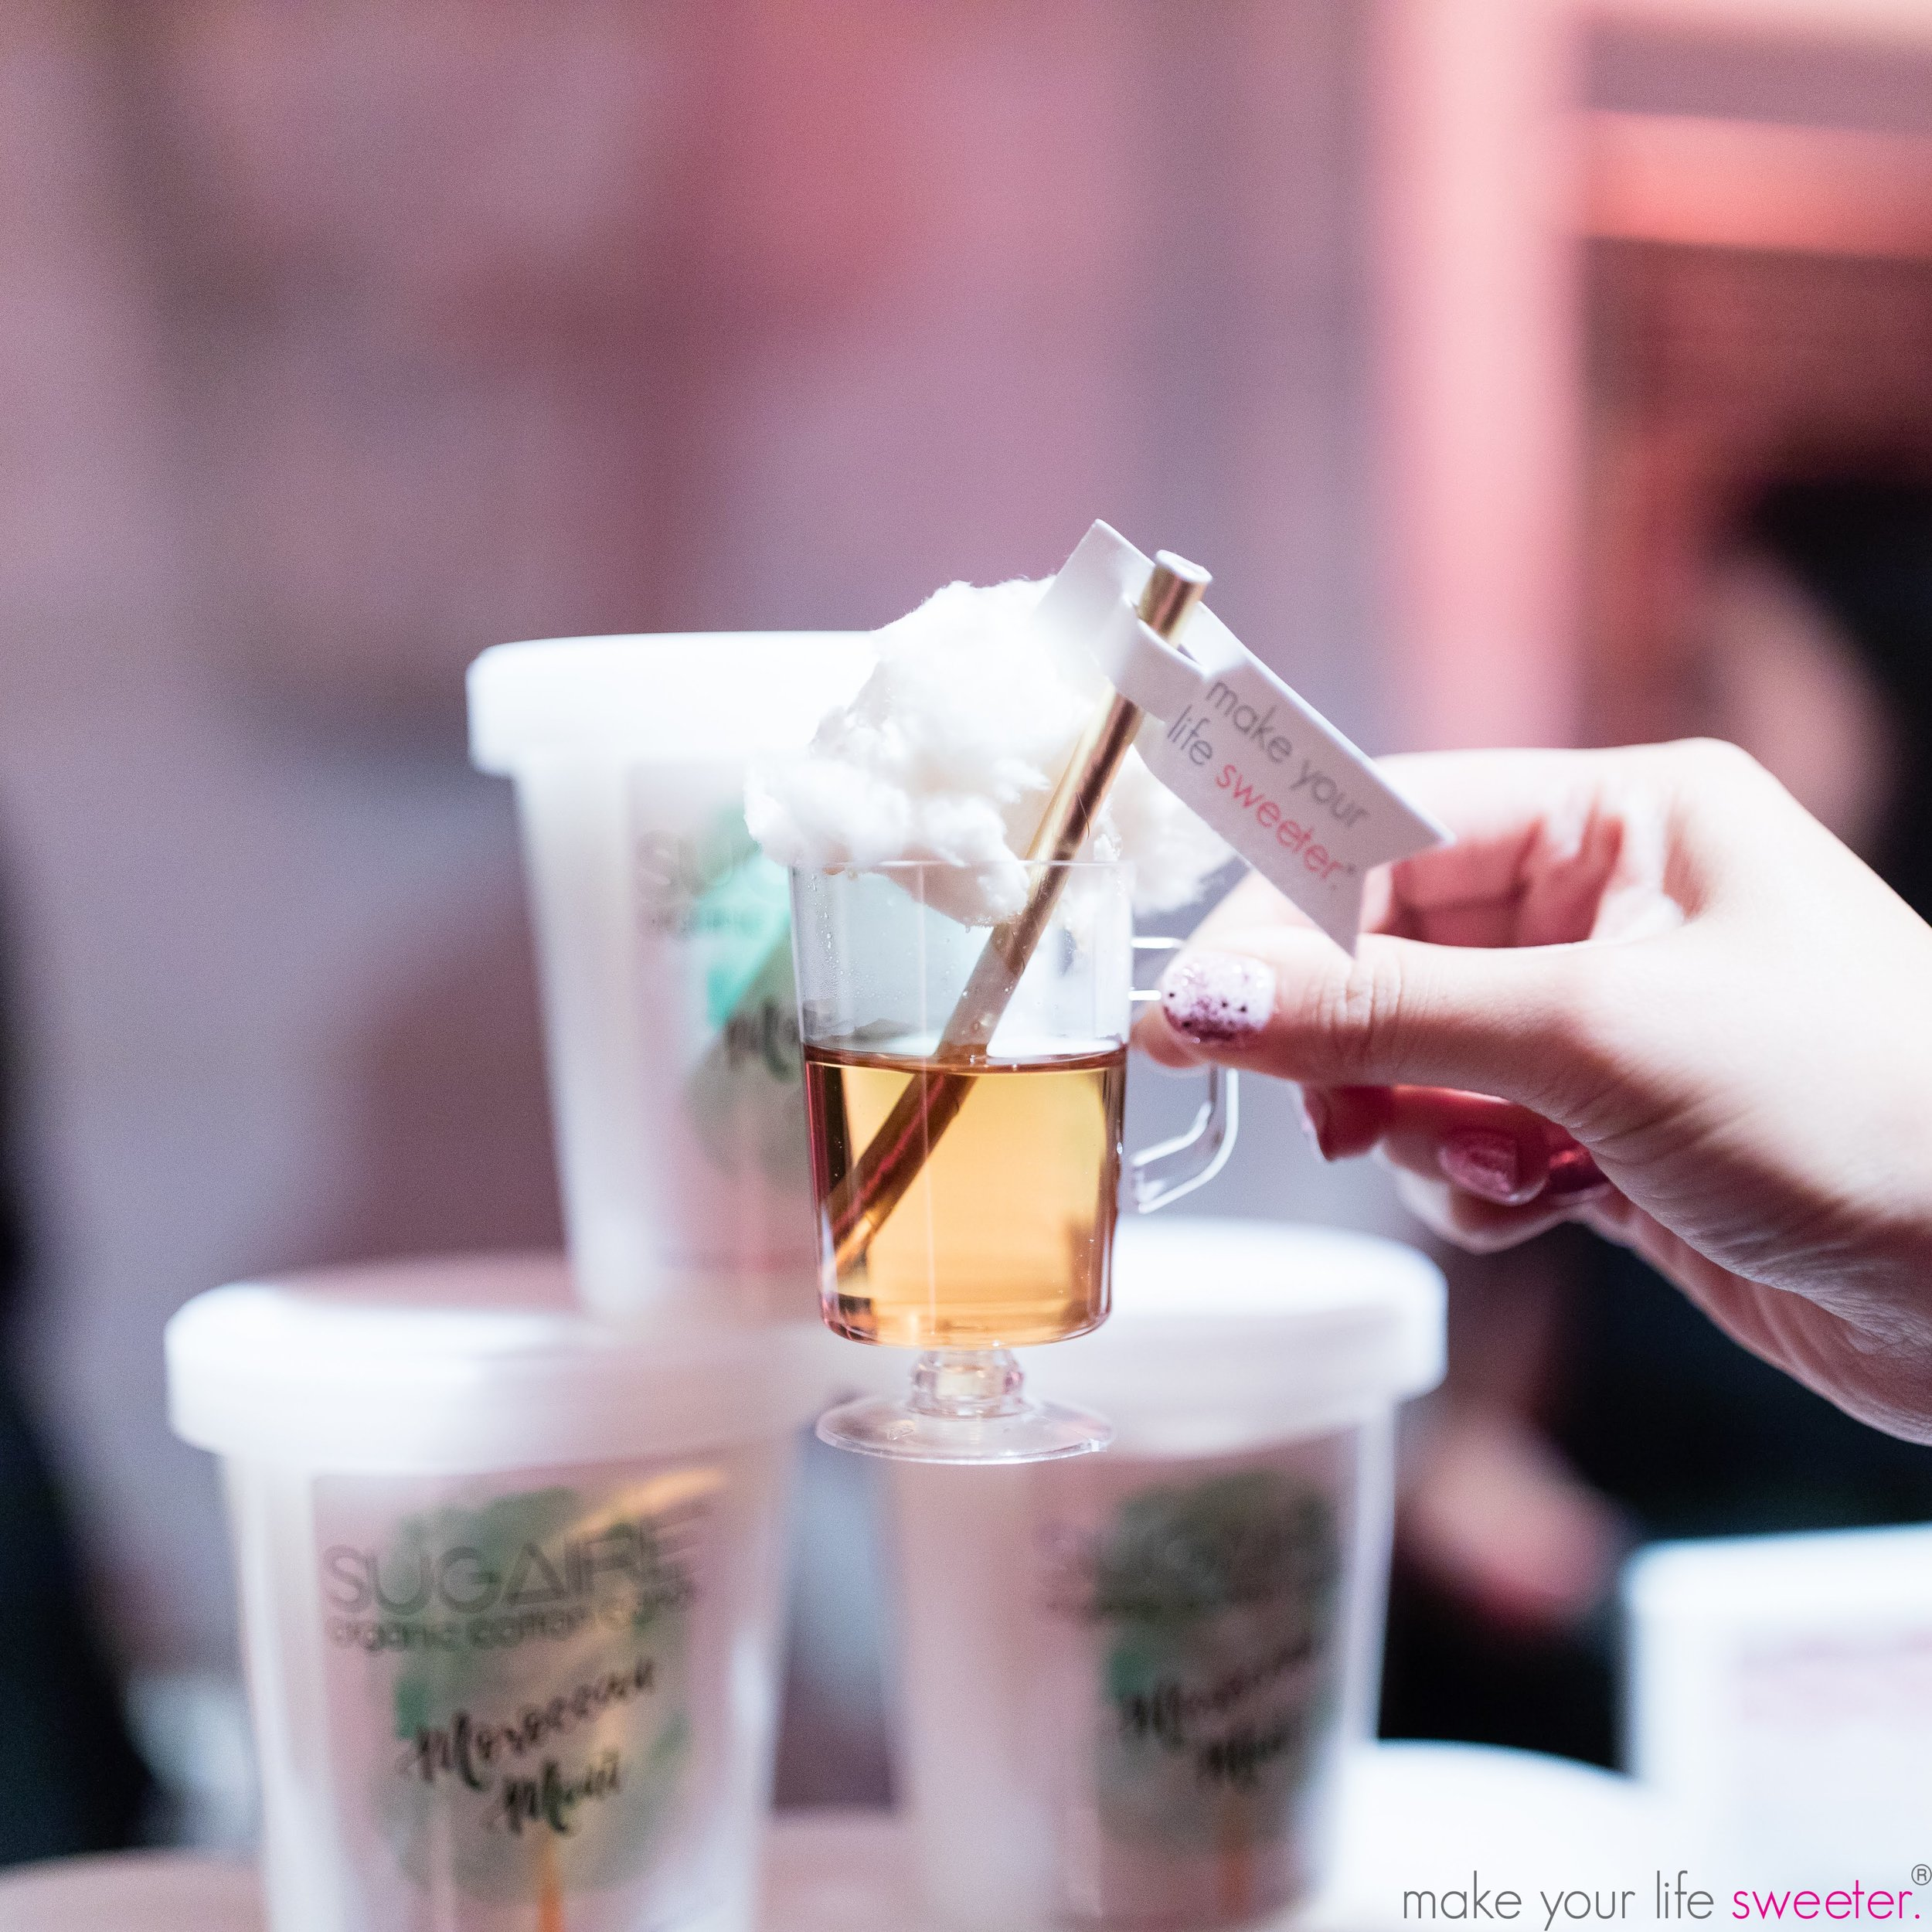 Sugaire Organic Cotton Candy Hot Tea Infusion Bar - The Knot Gala